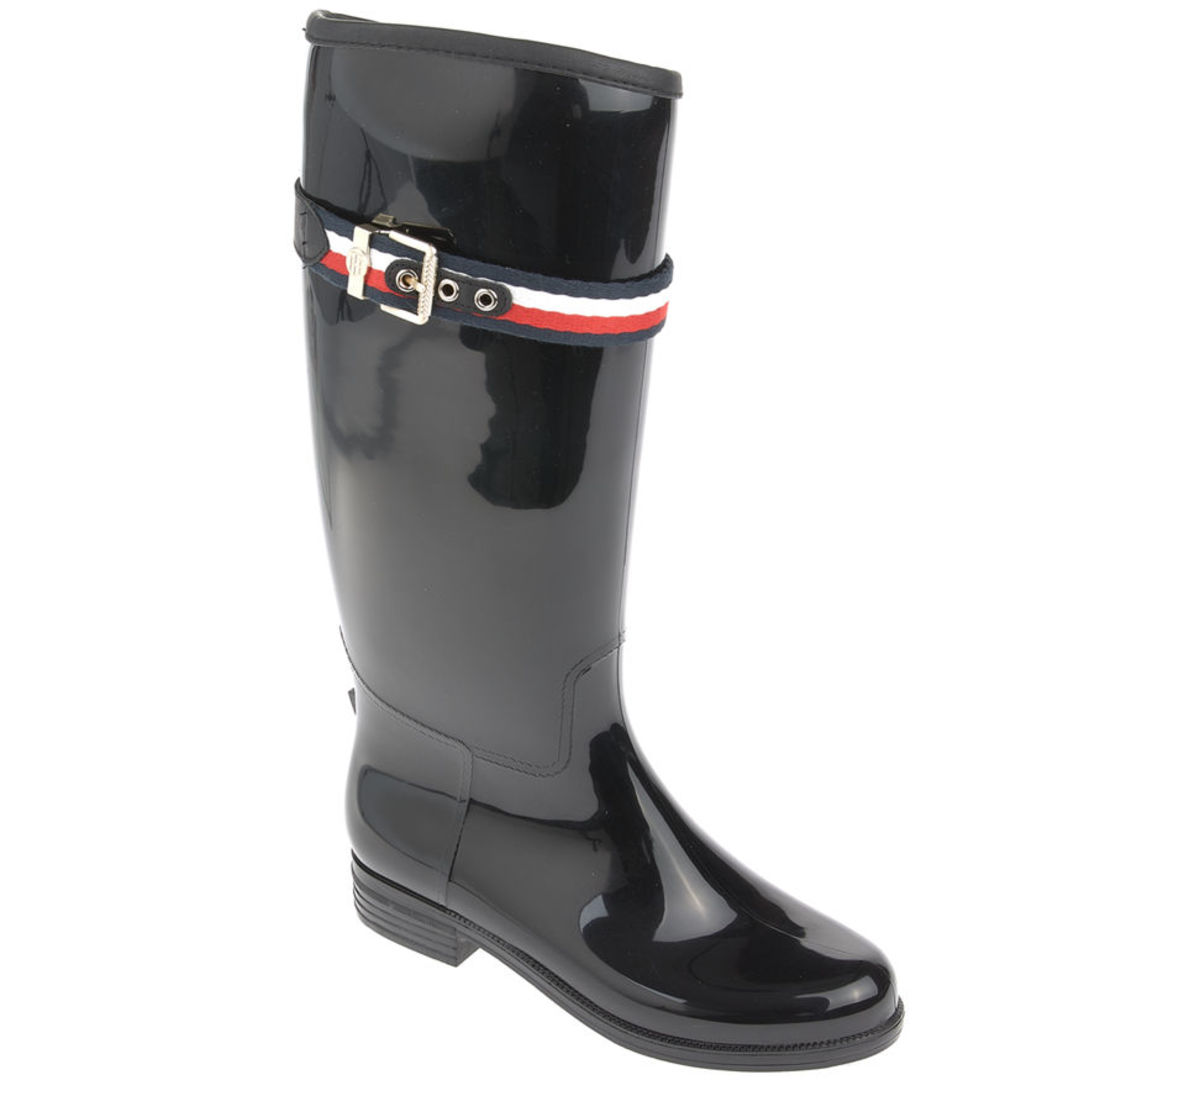 Bild 1 von Tommy Hilfiger Gummistiefel - CORPORATE BELT LONG RAIN BOOT